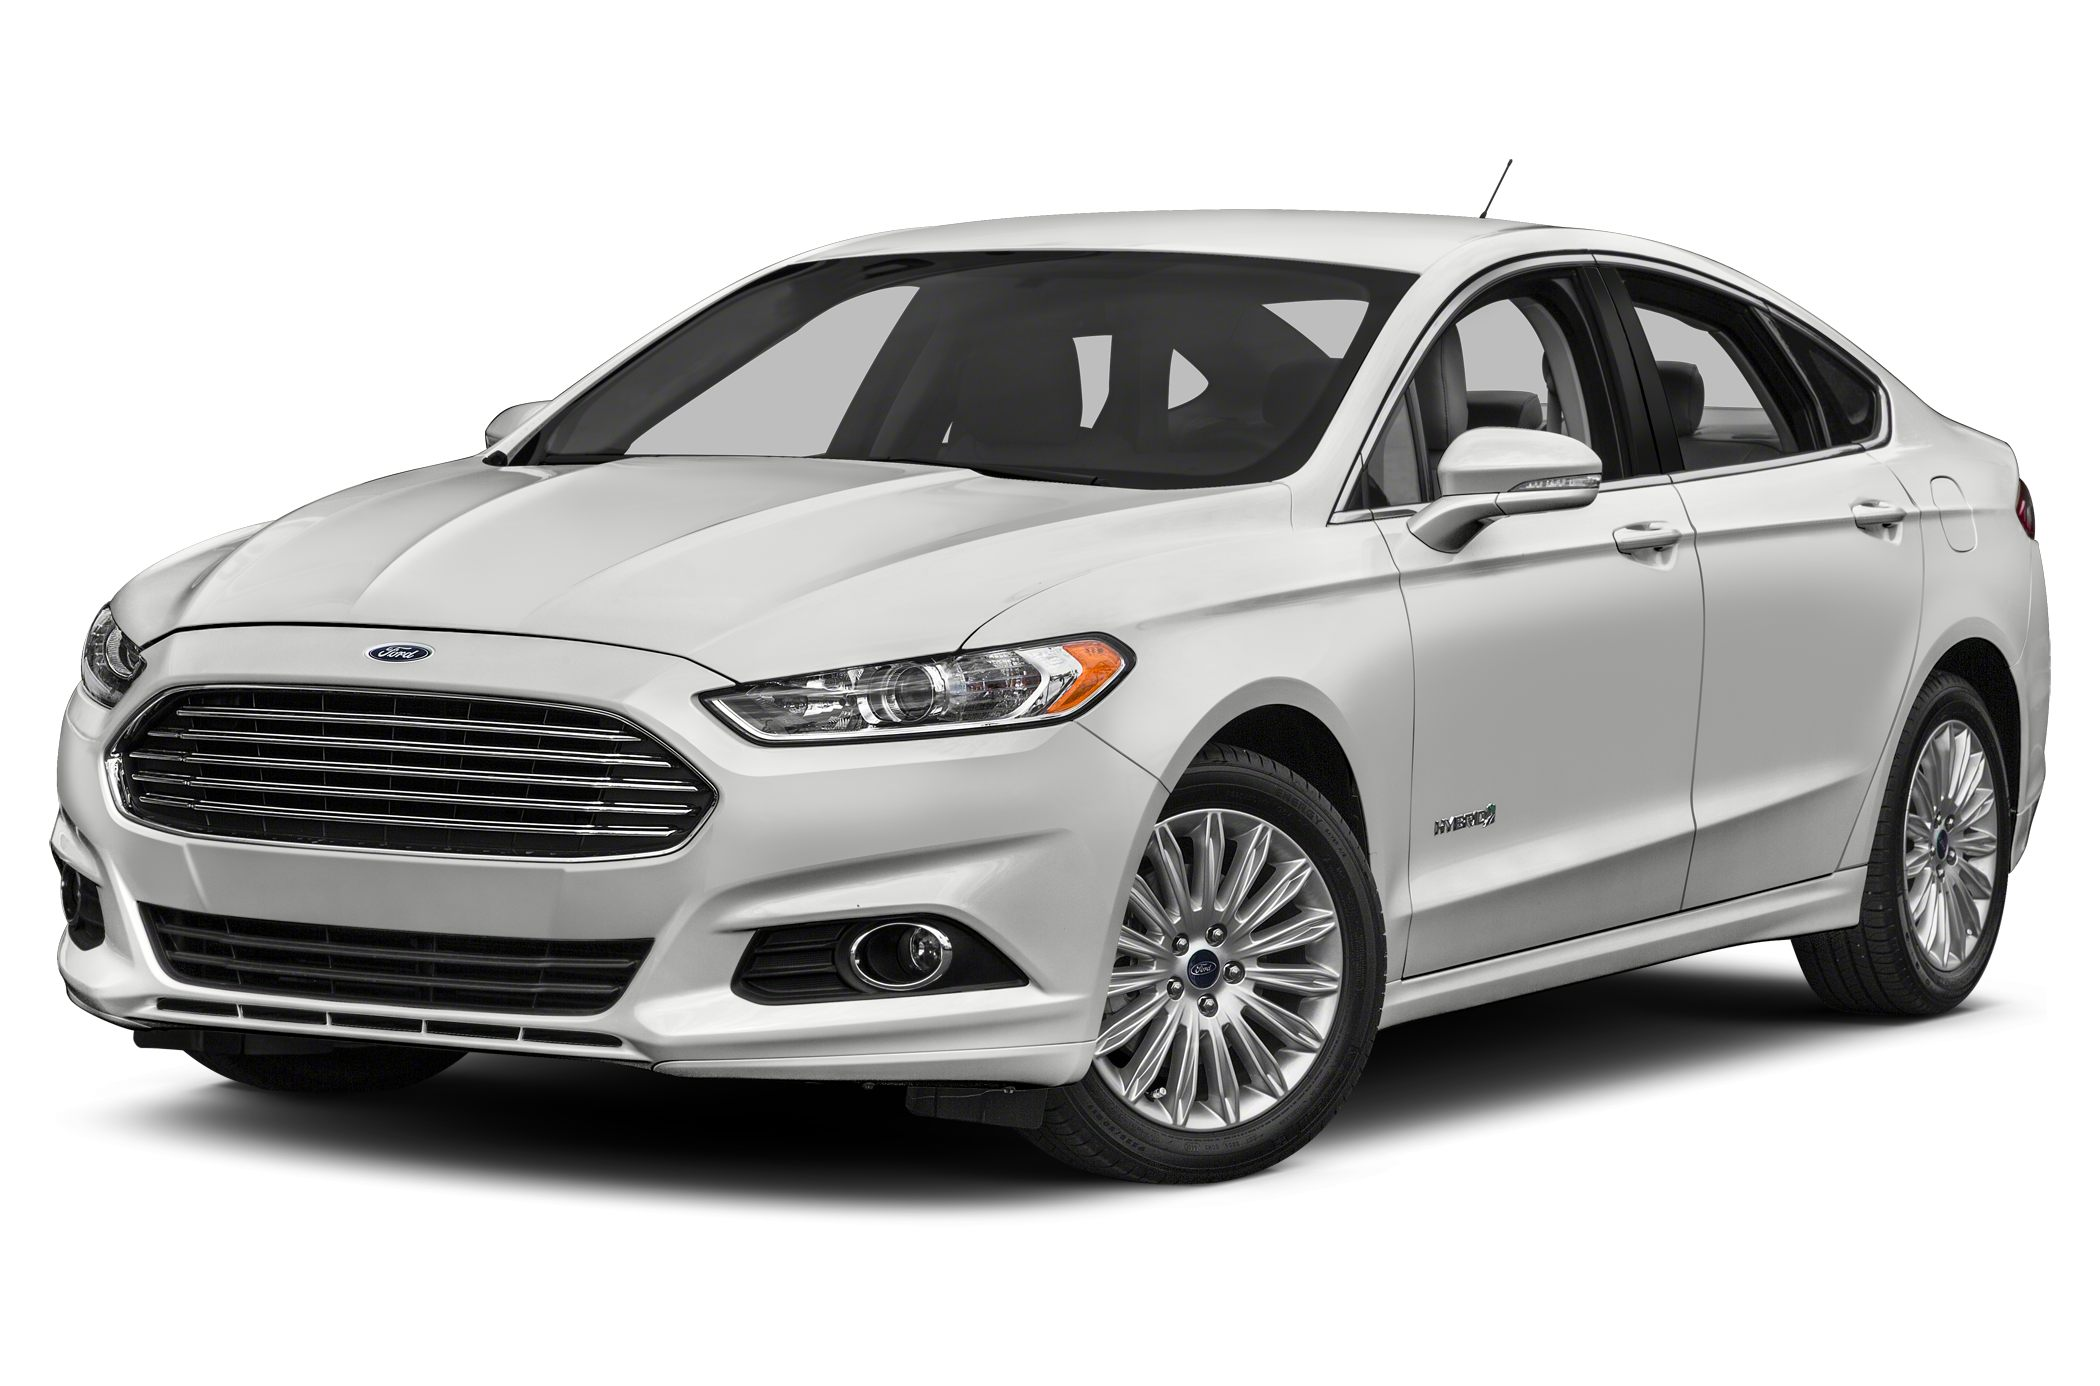 2013 Ford Fusion Hybrid SE Hybrid Sedan for sale in Orlando for $20,495 with 18,583 miles